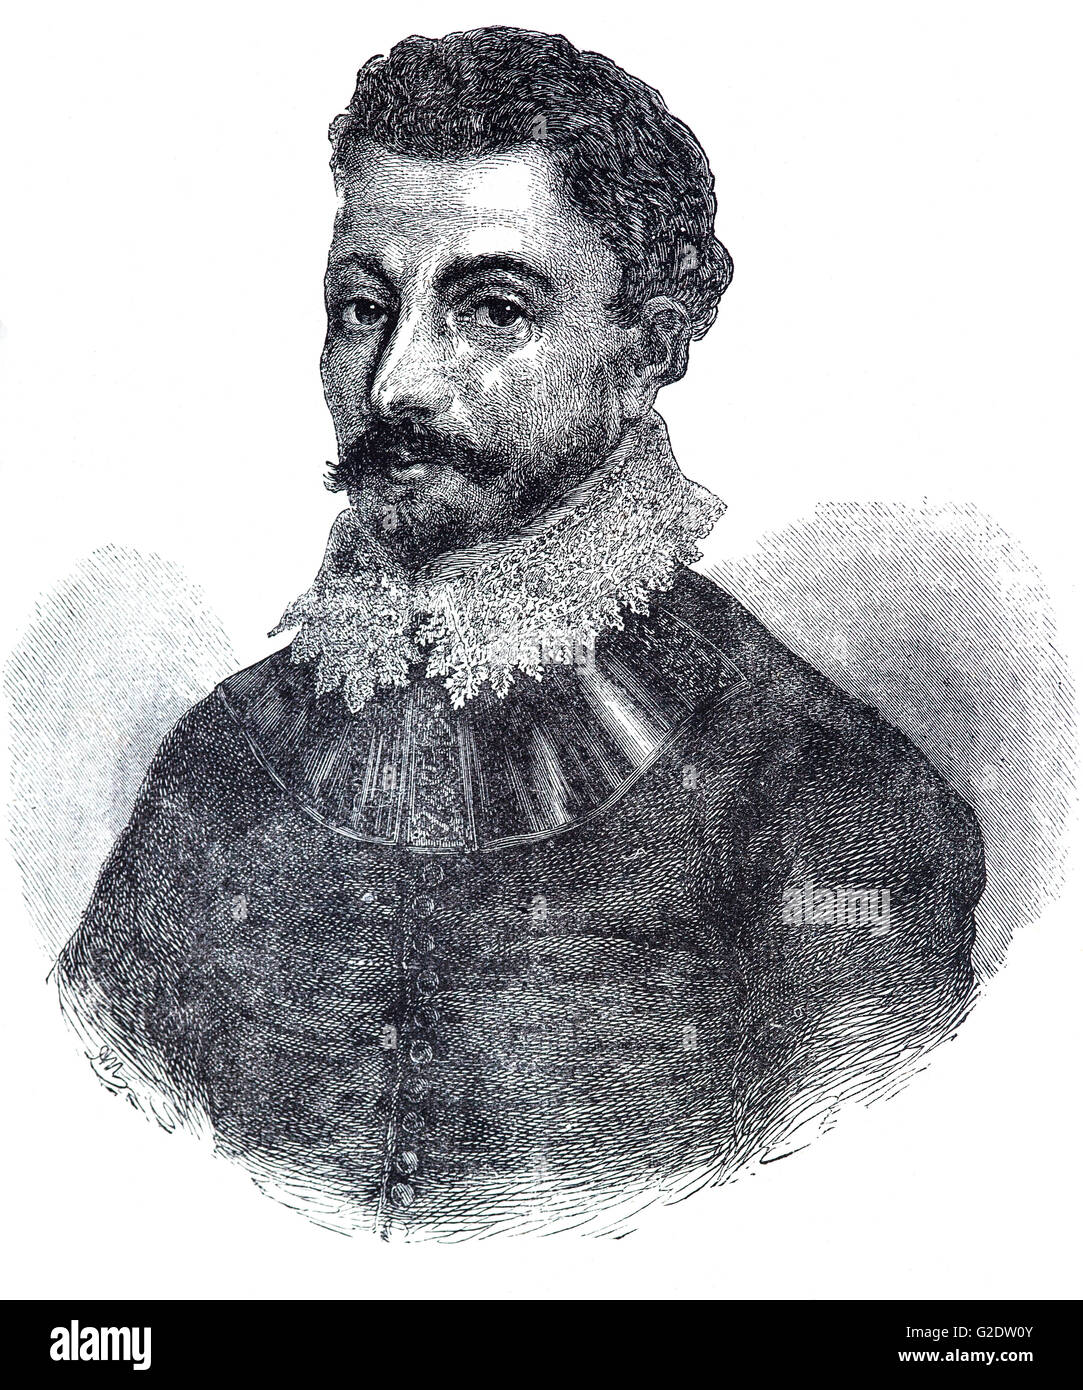 Sir Francis Drake, (1540 – 1596) was an English sea captain, privateer, navigator, slaver, and politician of the - Stock Image